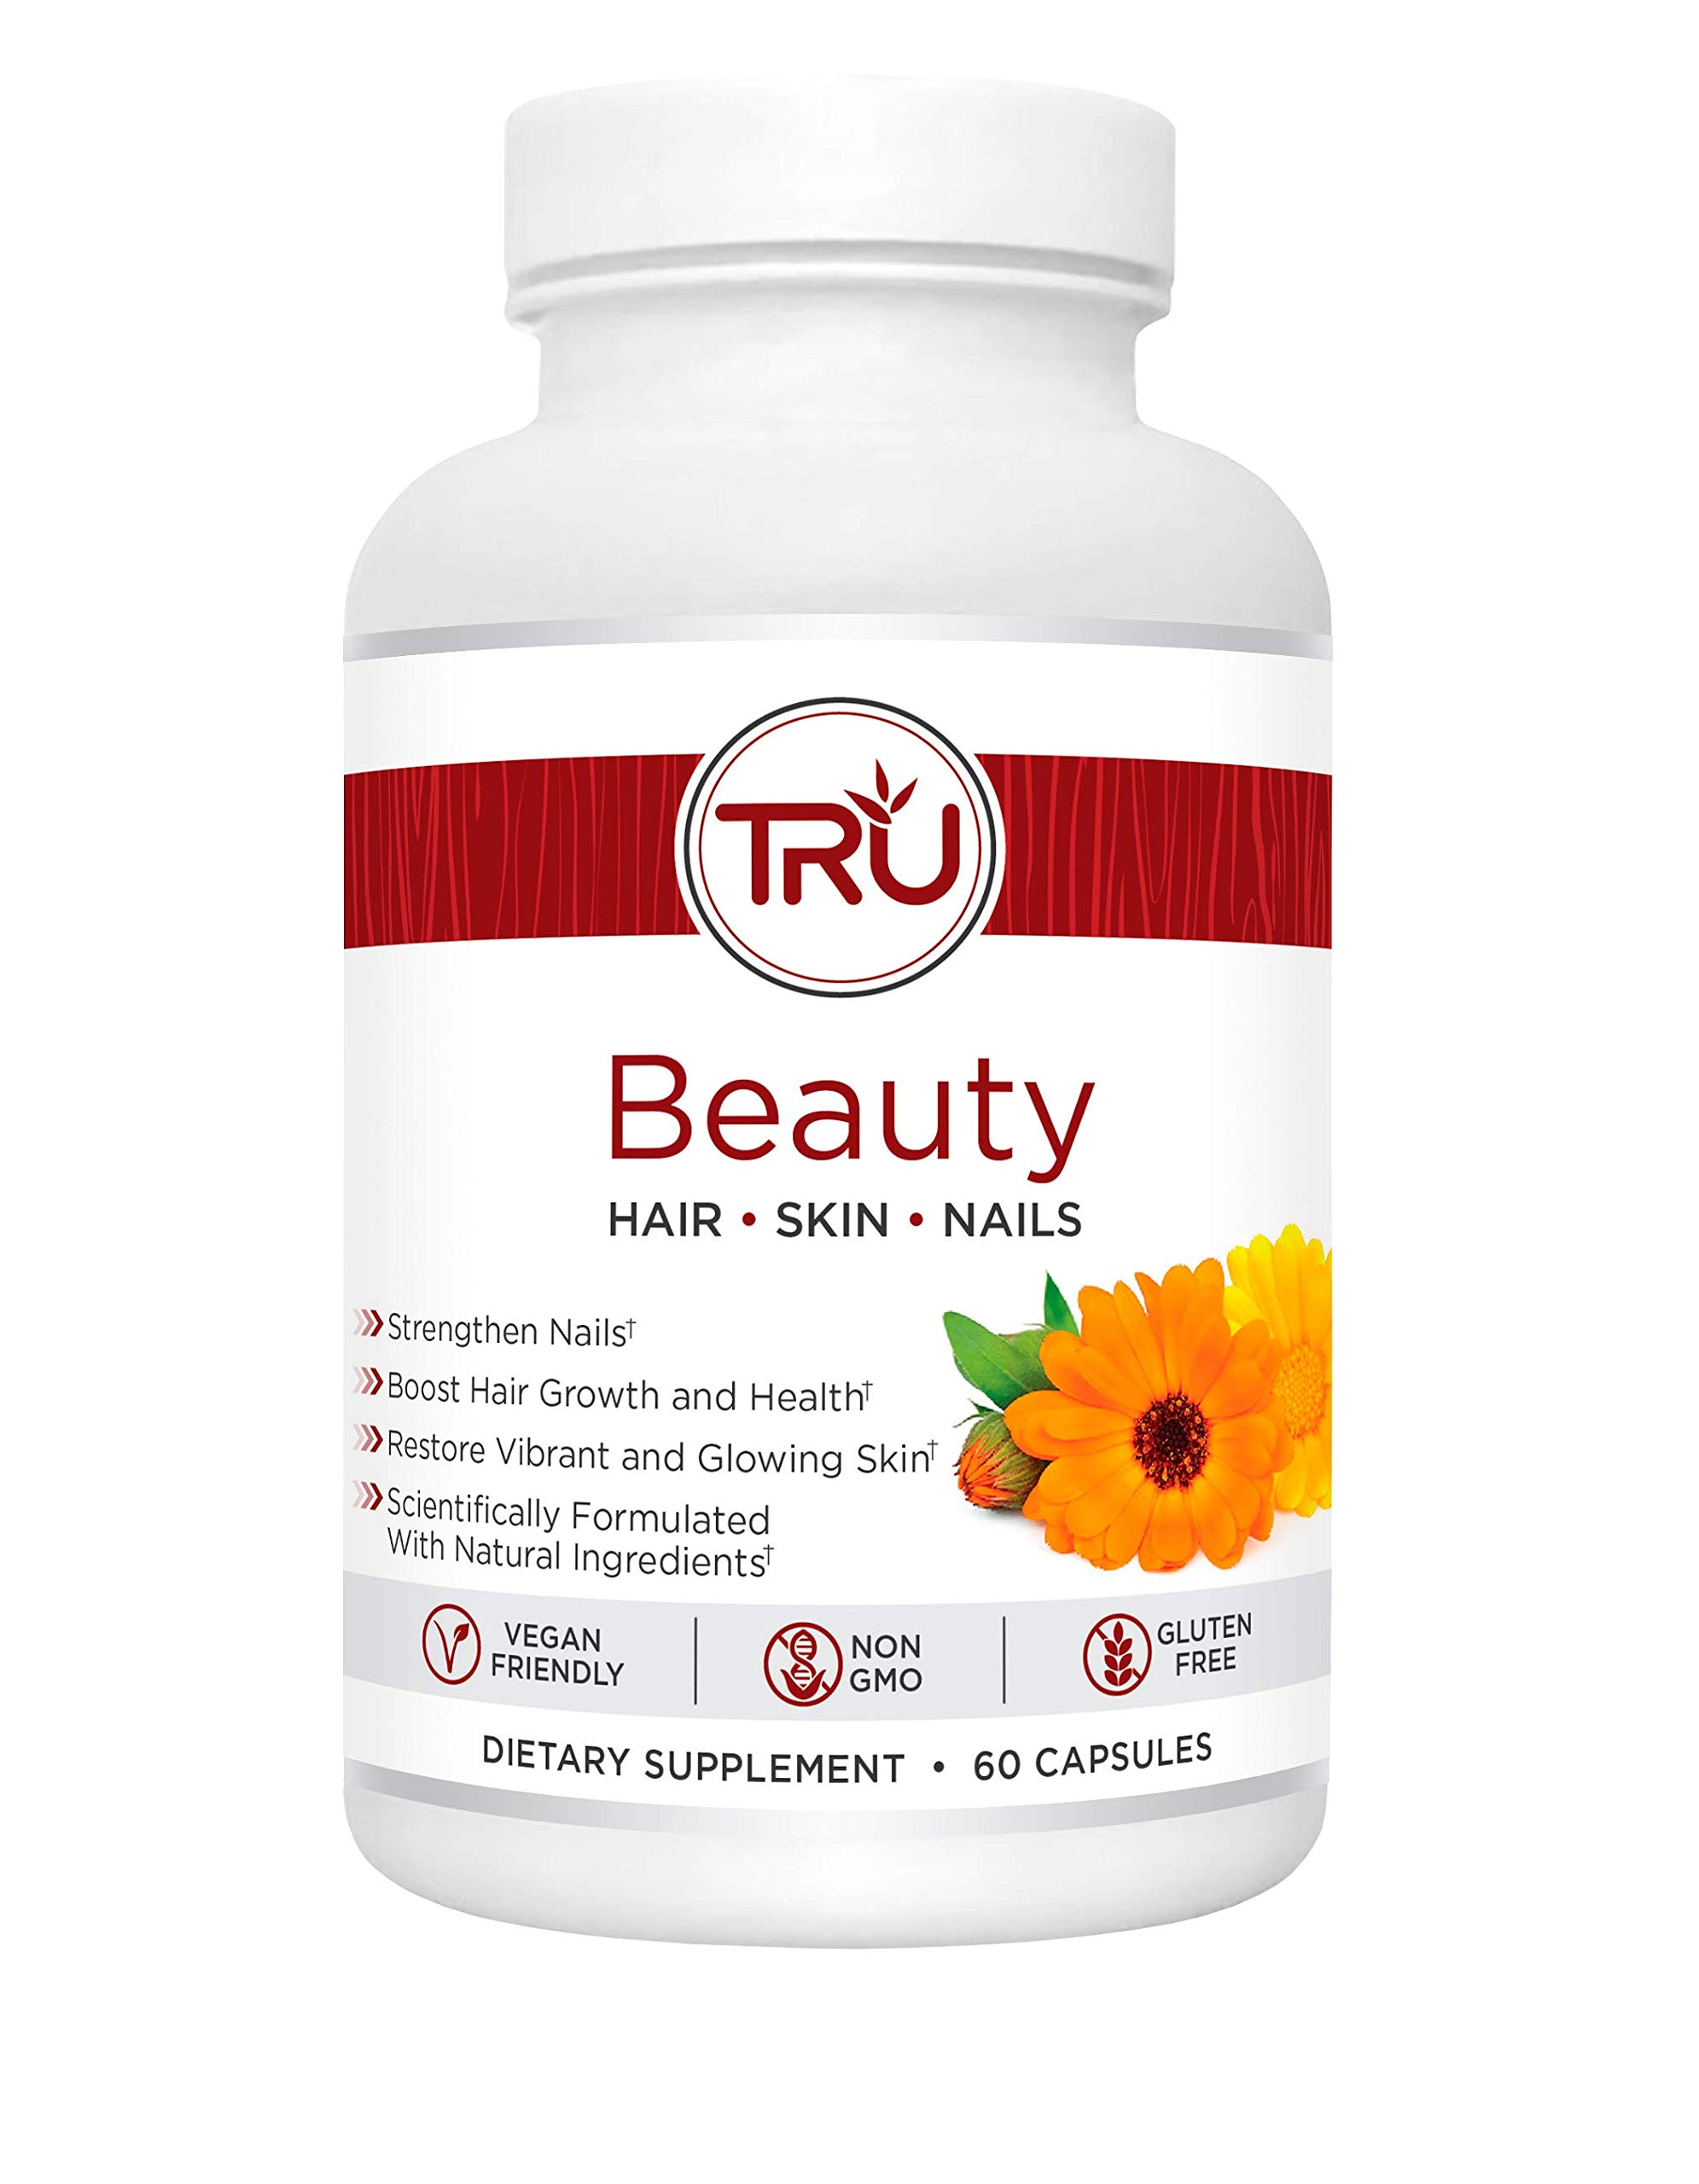 TRU Beauty | Glowing Skin - Strong Nails - Healthy Hair | Natural Formula with Biotin + 6 Clinically Proven Ingredients | Vegan and Non-GMO | 60 Capsules